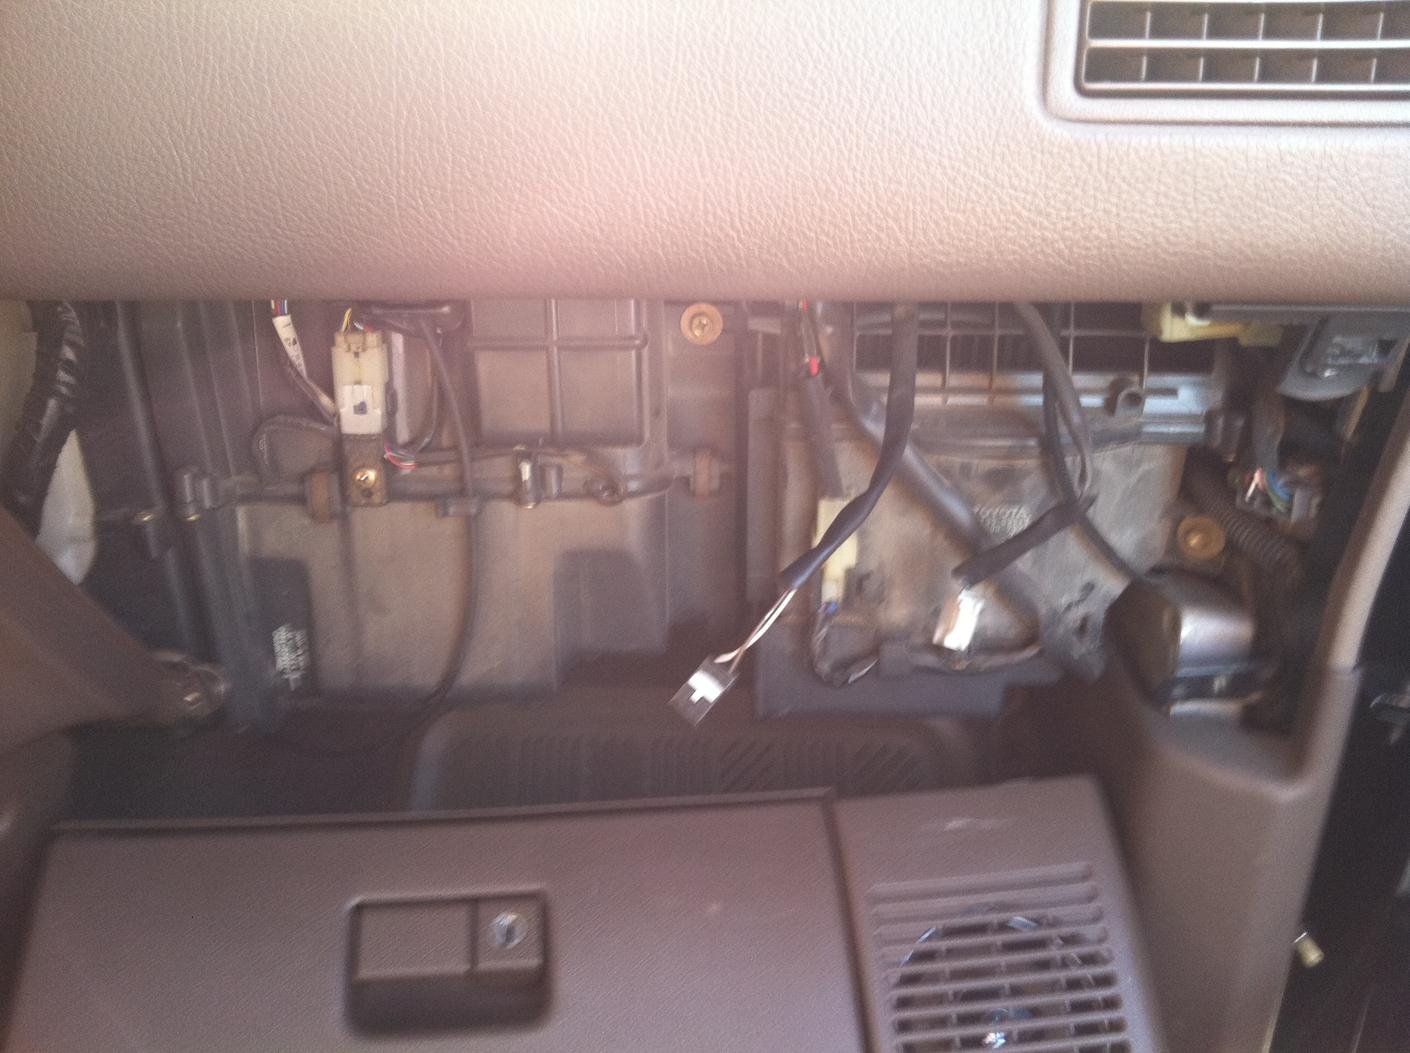 Replace in addition Ford Focus 2009 Main Engine Fuse Boxblock Circuit Breaker Diagram in addition Toyota Ta a 2002 Fuel Pump Relay Location besides Watch moreover Wiring Diagram 2004 Chrysler Sebring. on 1998 chrysler sebring fuse box diagram